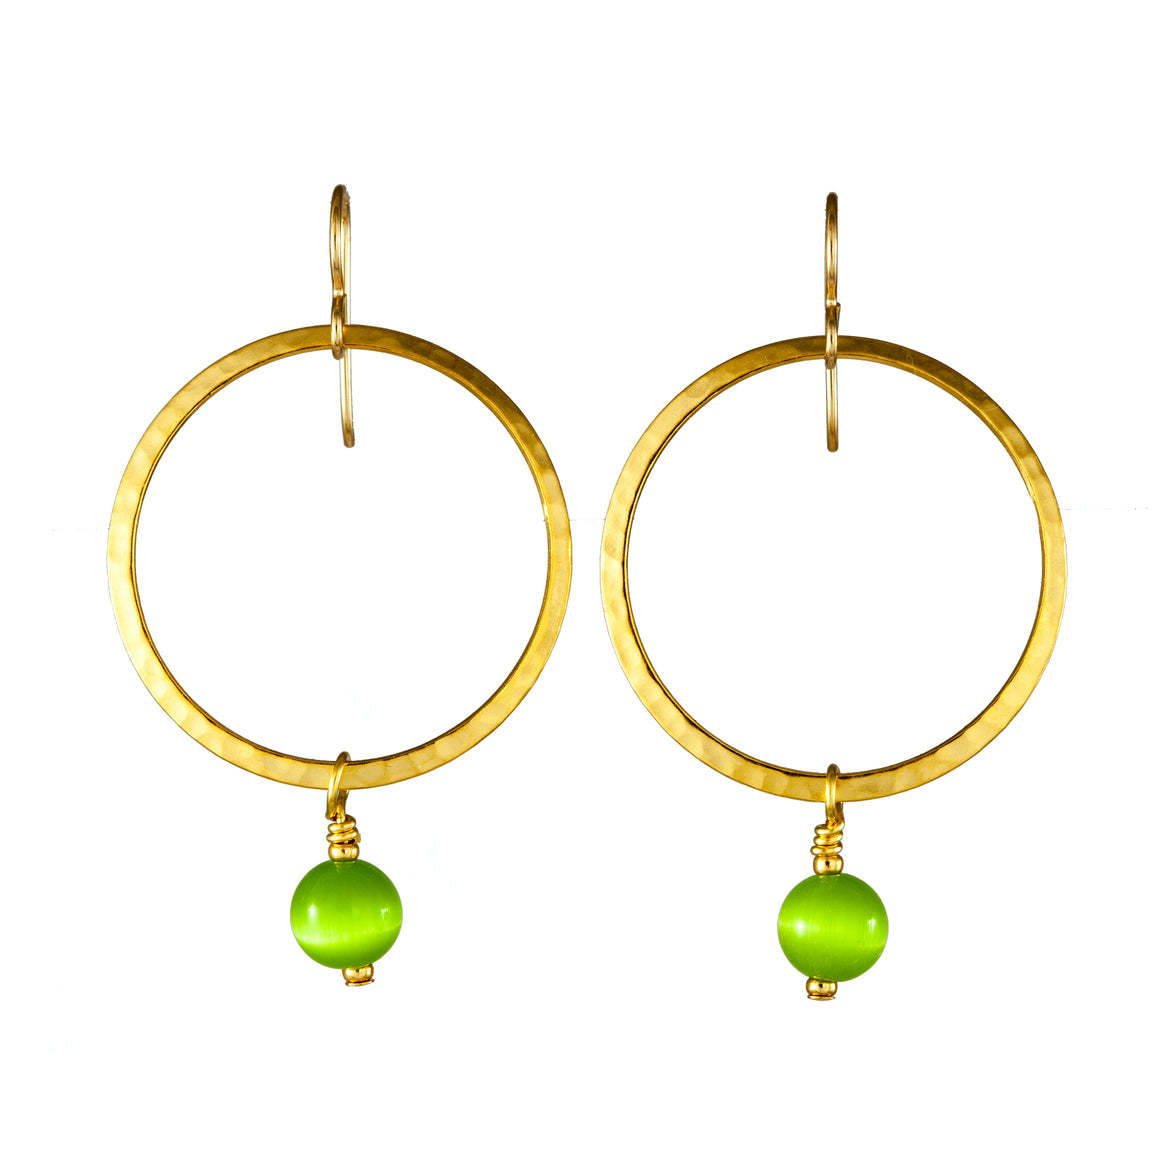 HOPE HOOP | EARRINGS